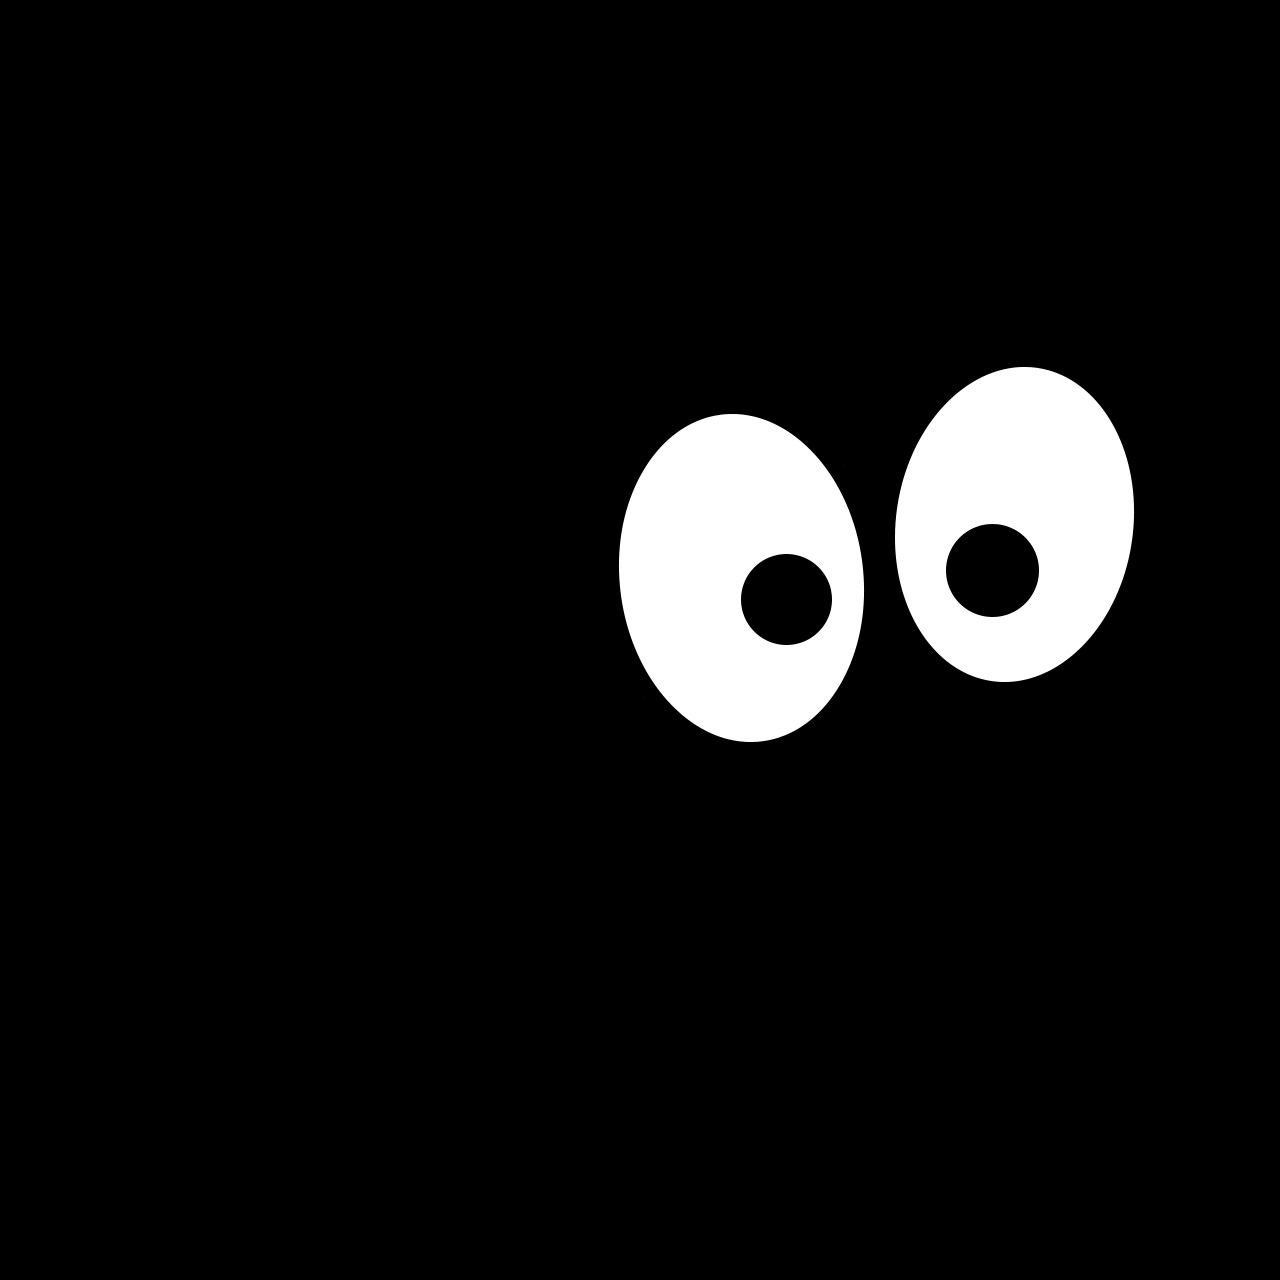 Dark eyeballs cartoon